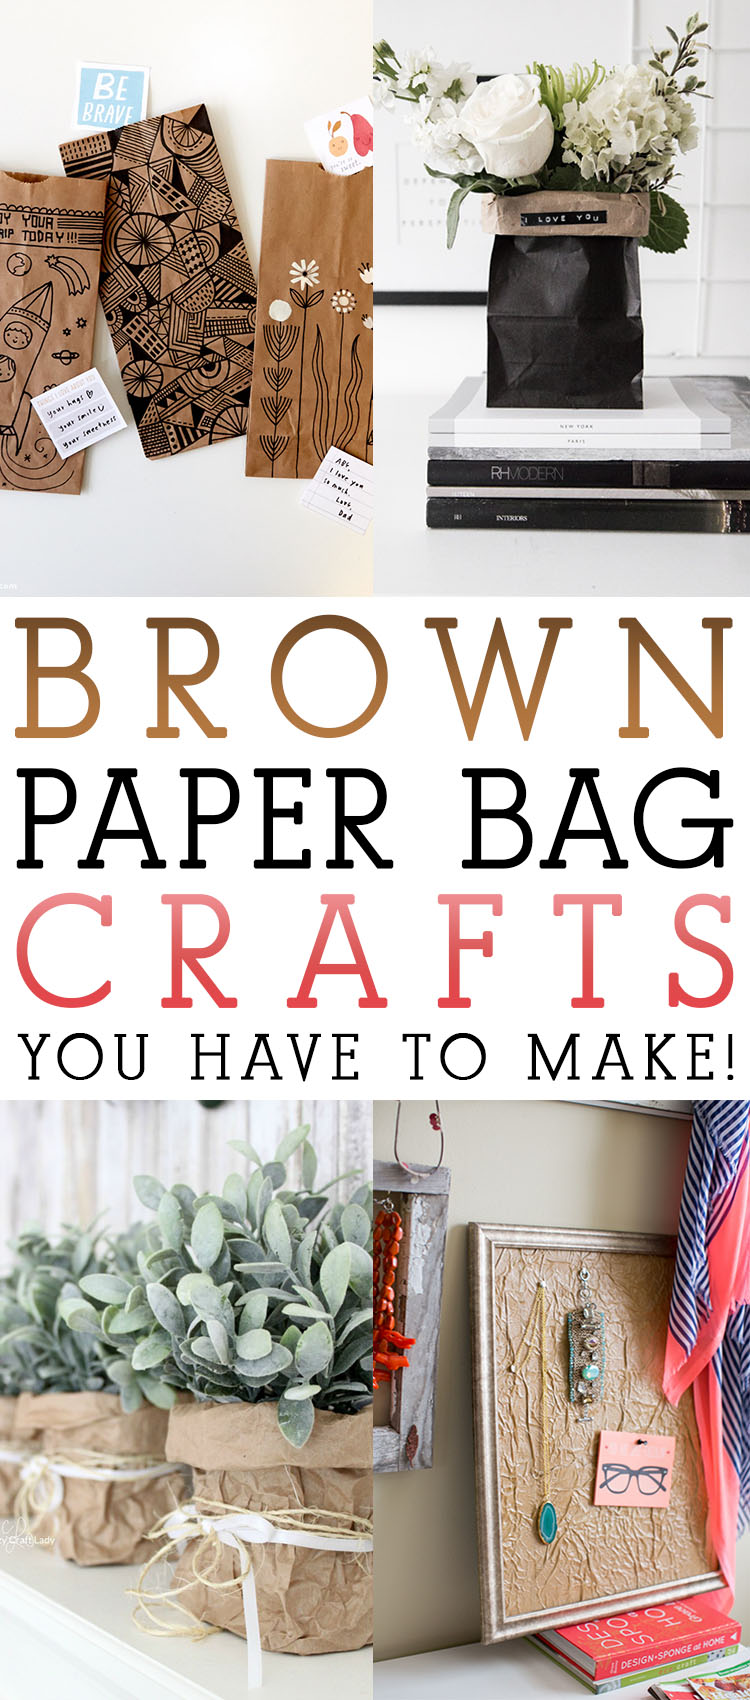 Brown paper bag crafts you have to make the cottage market for Brown paper bag crafts for toddlers